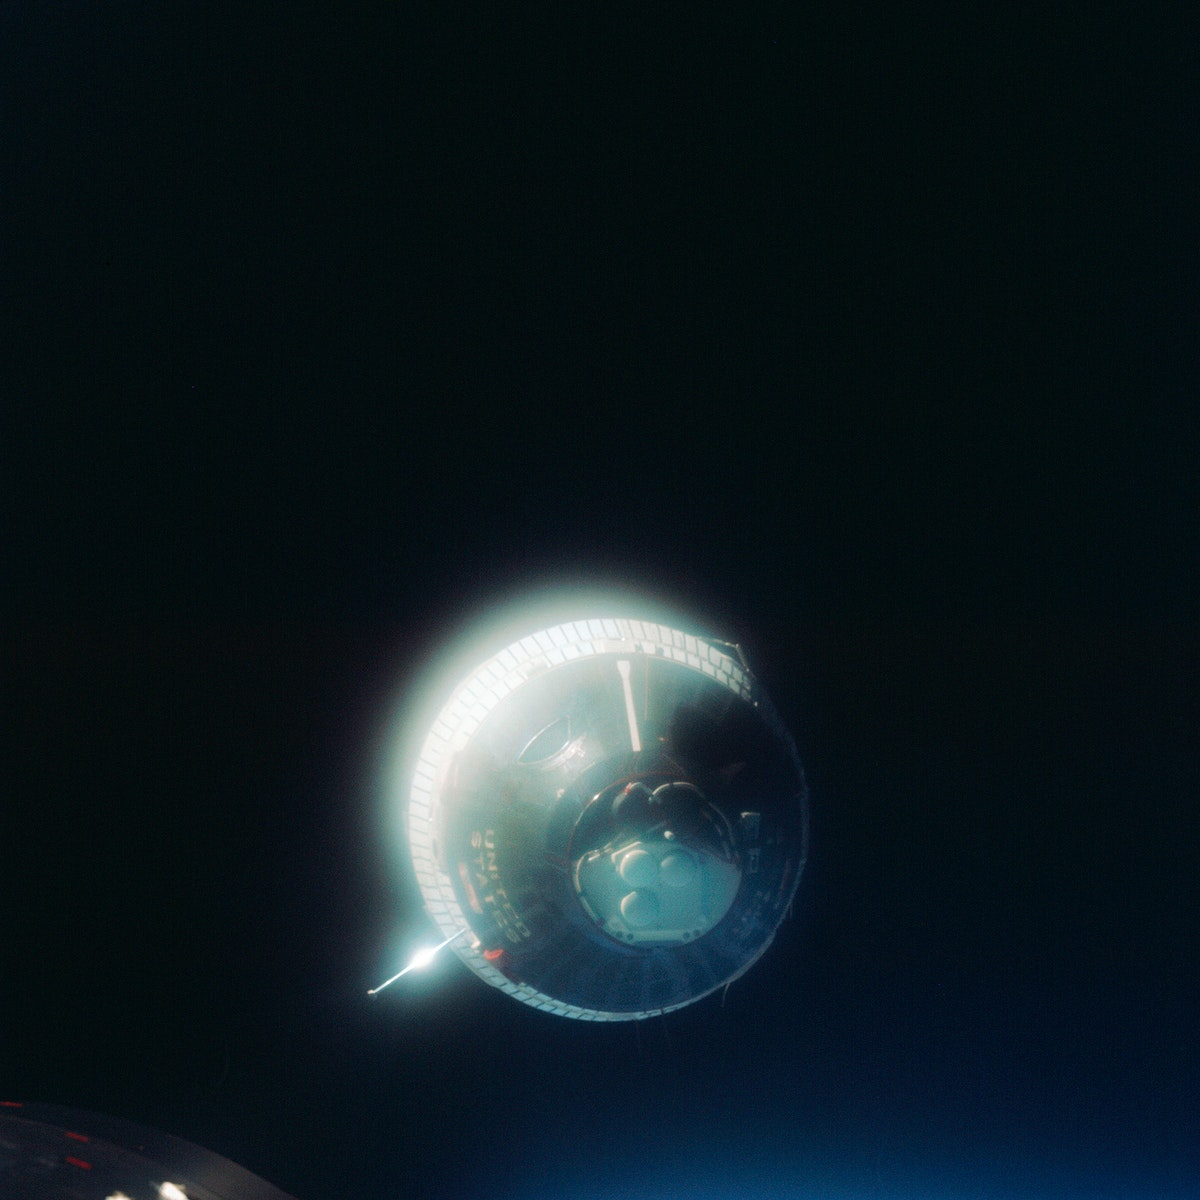 The Earth-orbiting Gemini-6 spacecraft against the blackness of space. Original from NASA. Digitally enhanced by rawpixel.